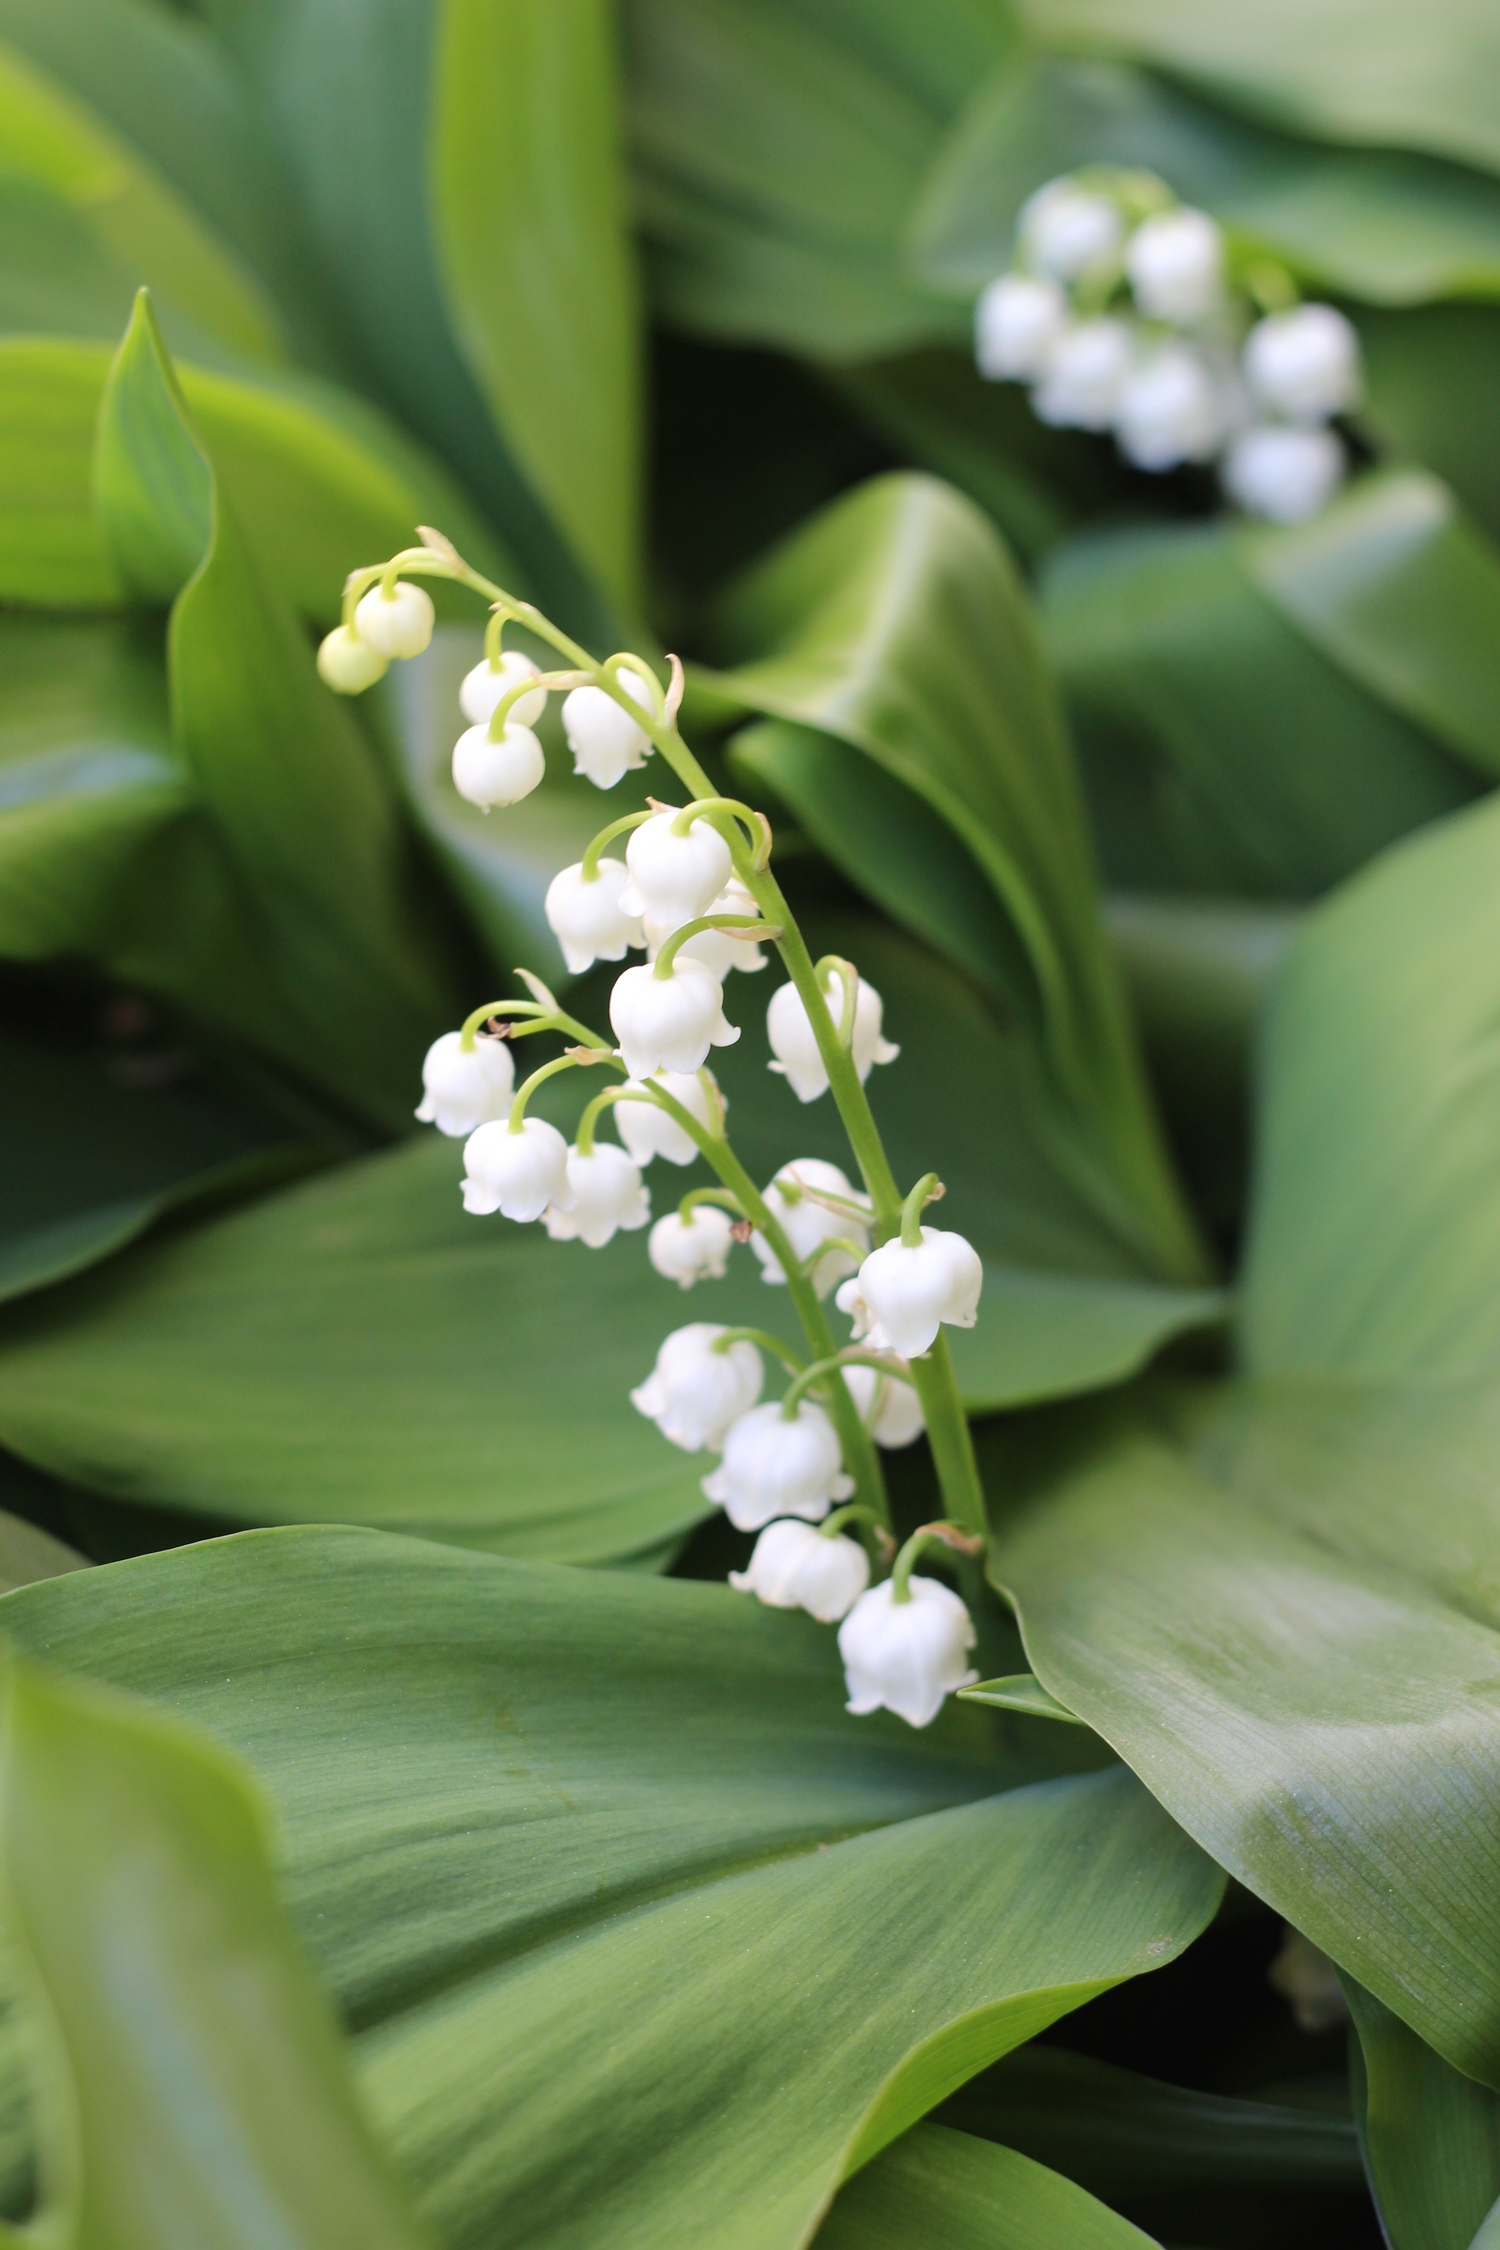 Culture Du Muguet En France may day & lily of the valley: bringing happiness to others